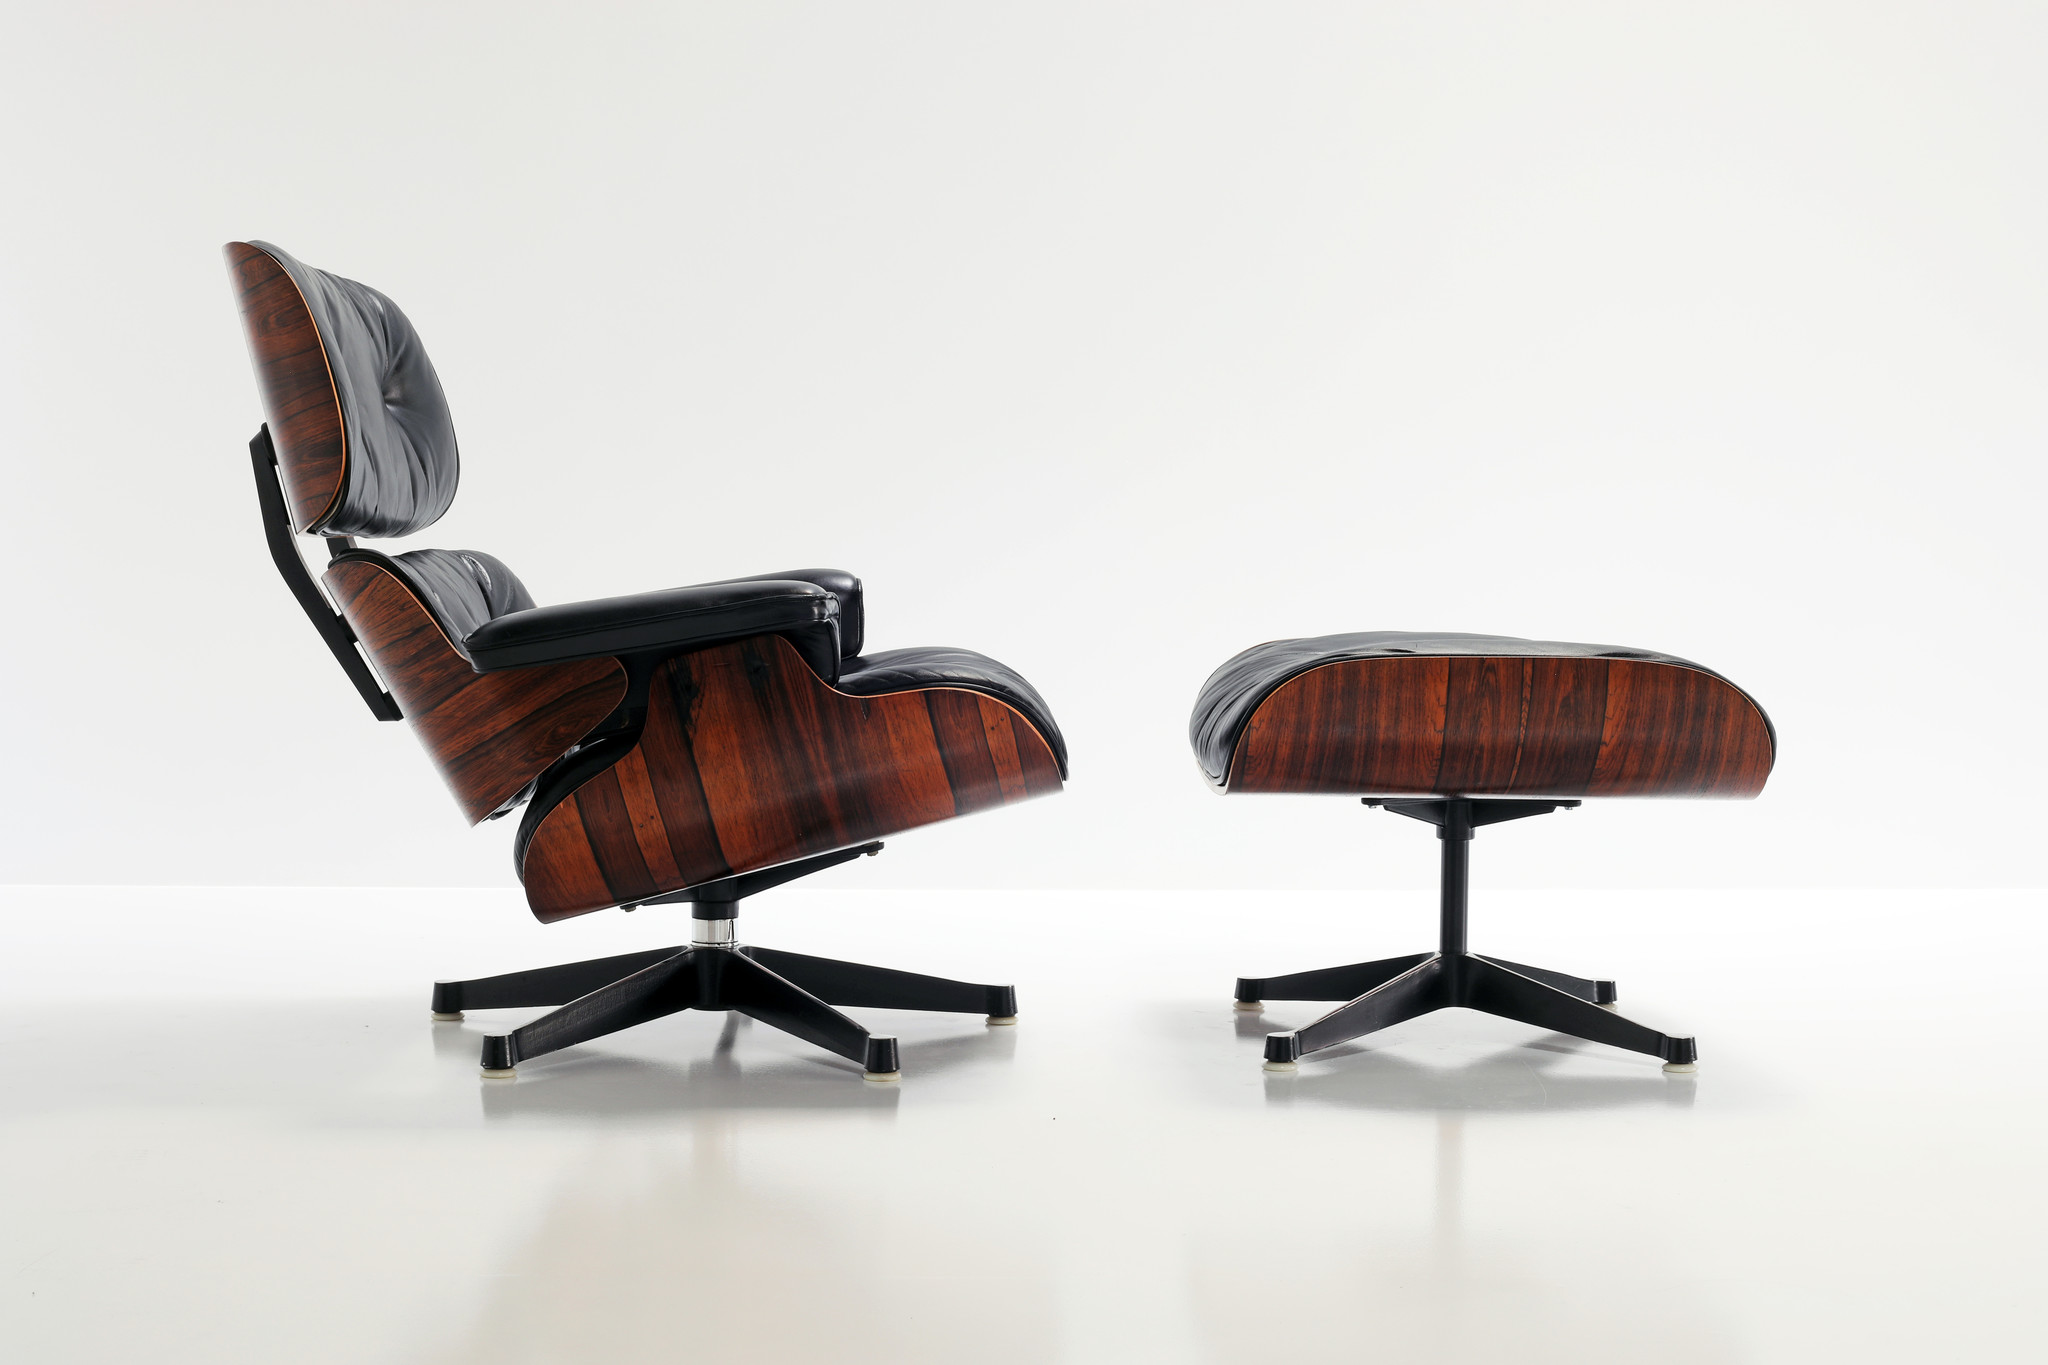 VINTAGE EAMES LOUNGE CHAIR & OTTOMAN Herman Miller, 1970's